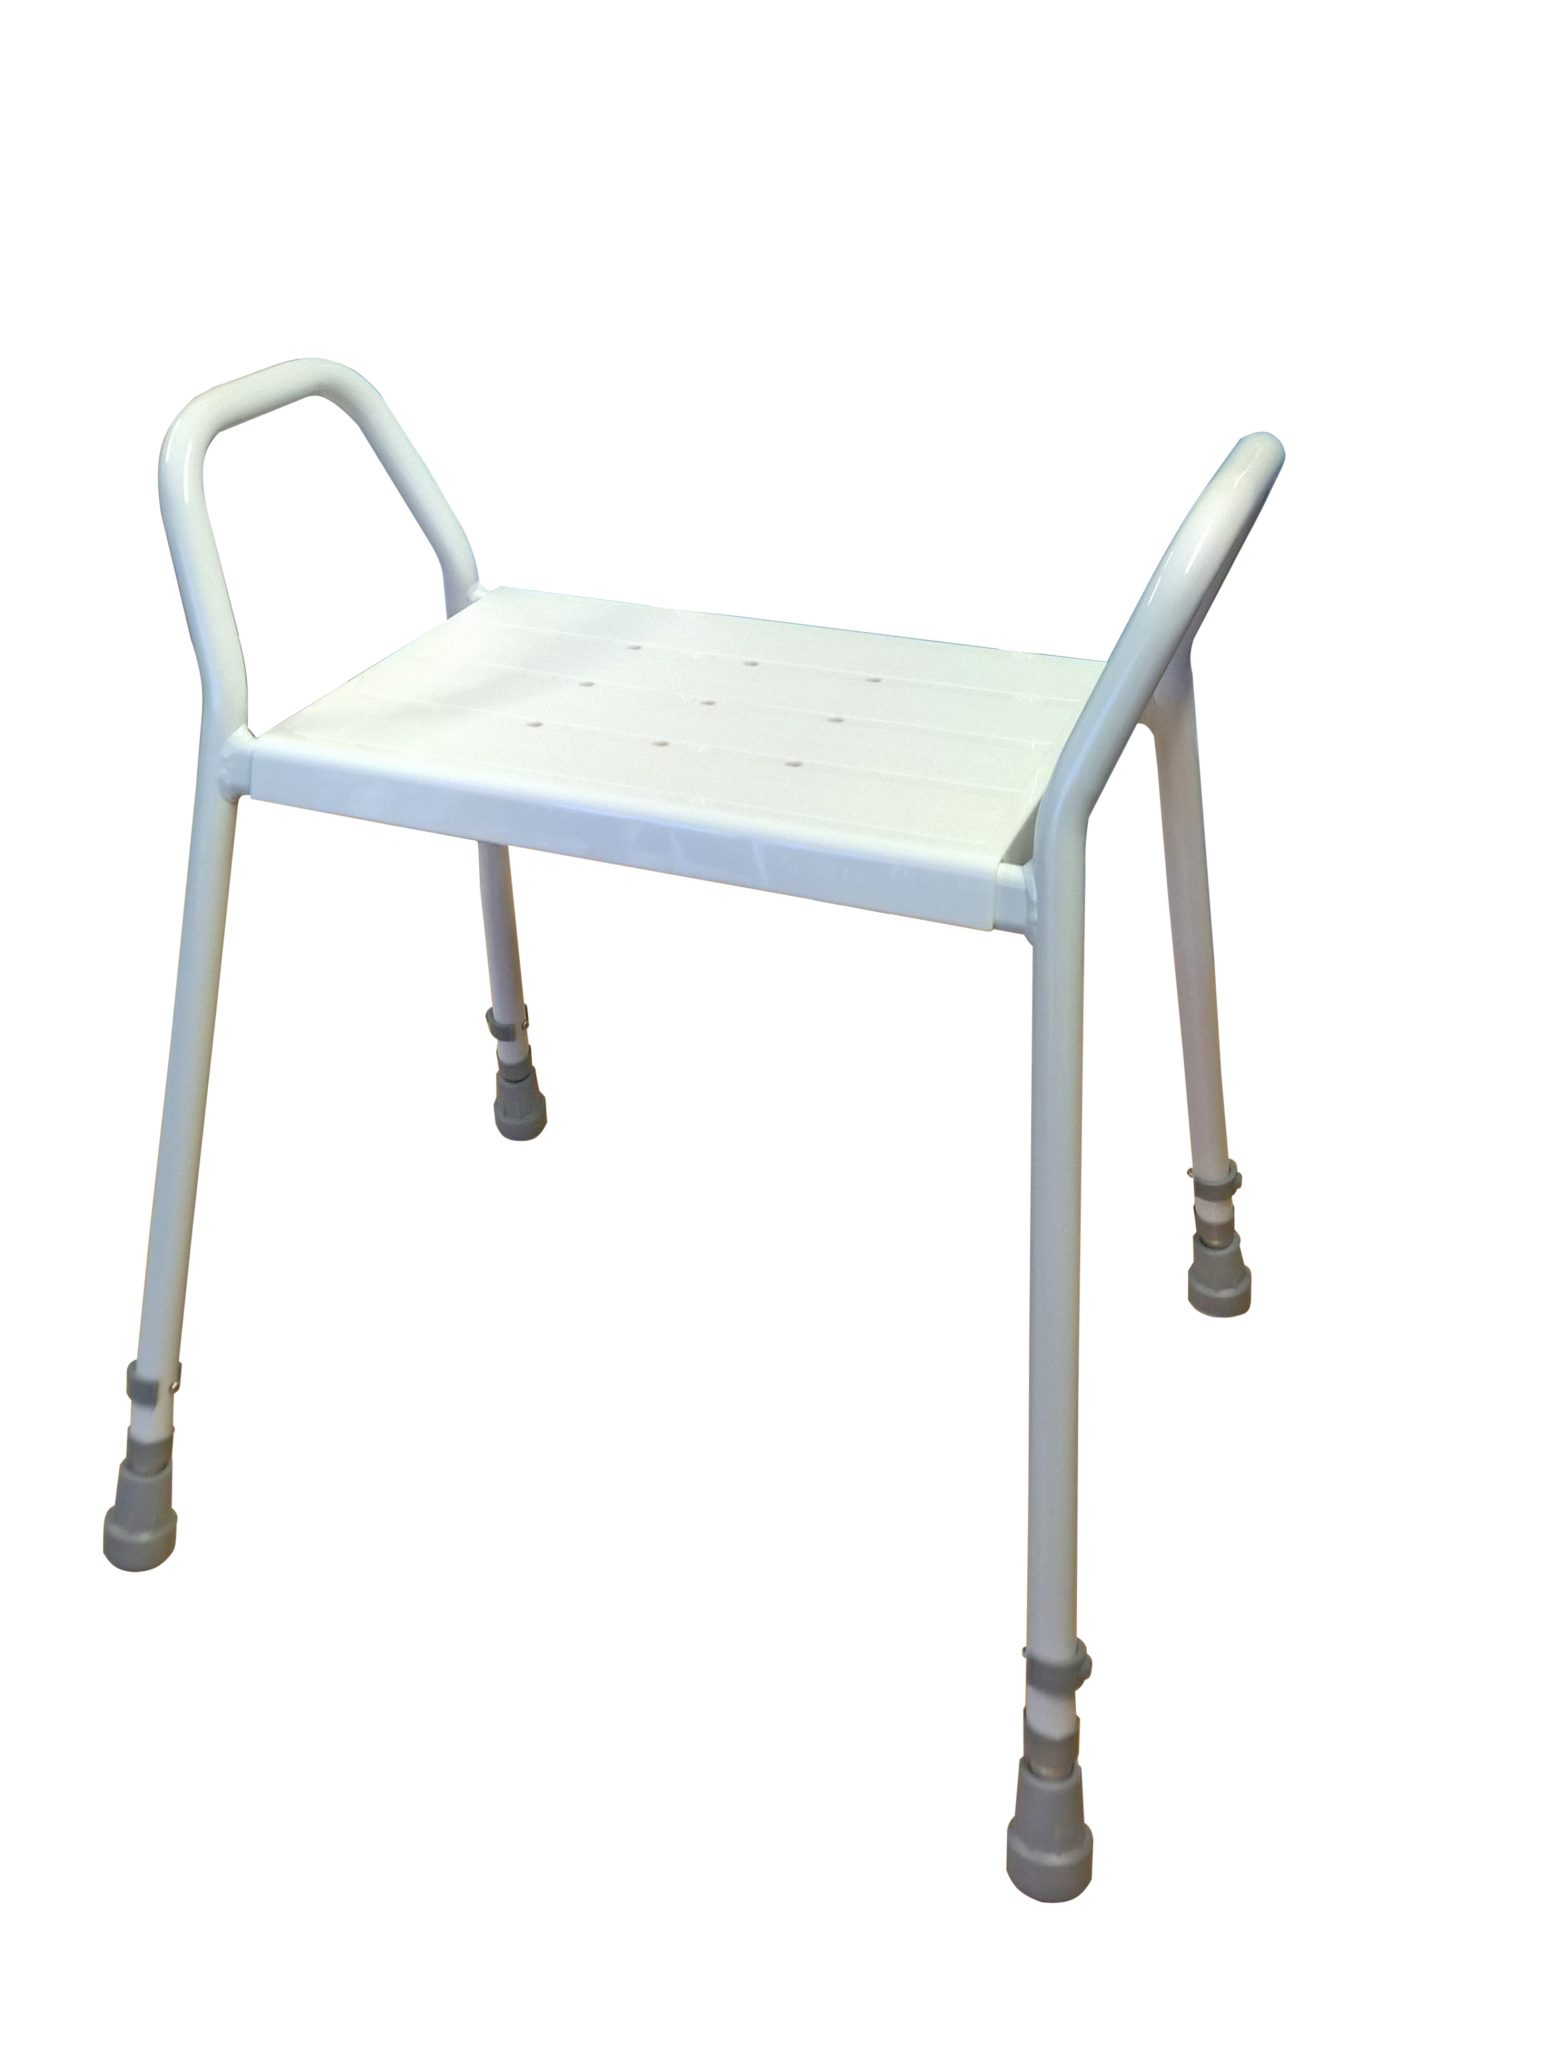 S10 Adjustable shower stool - Cefndy Healthcare